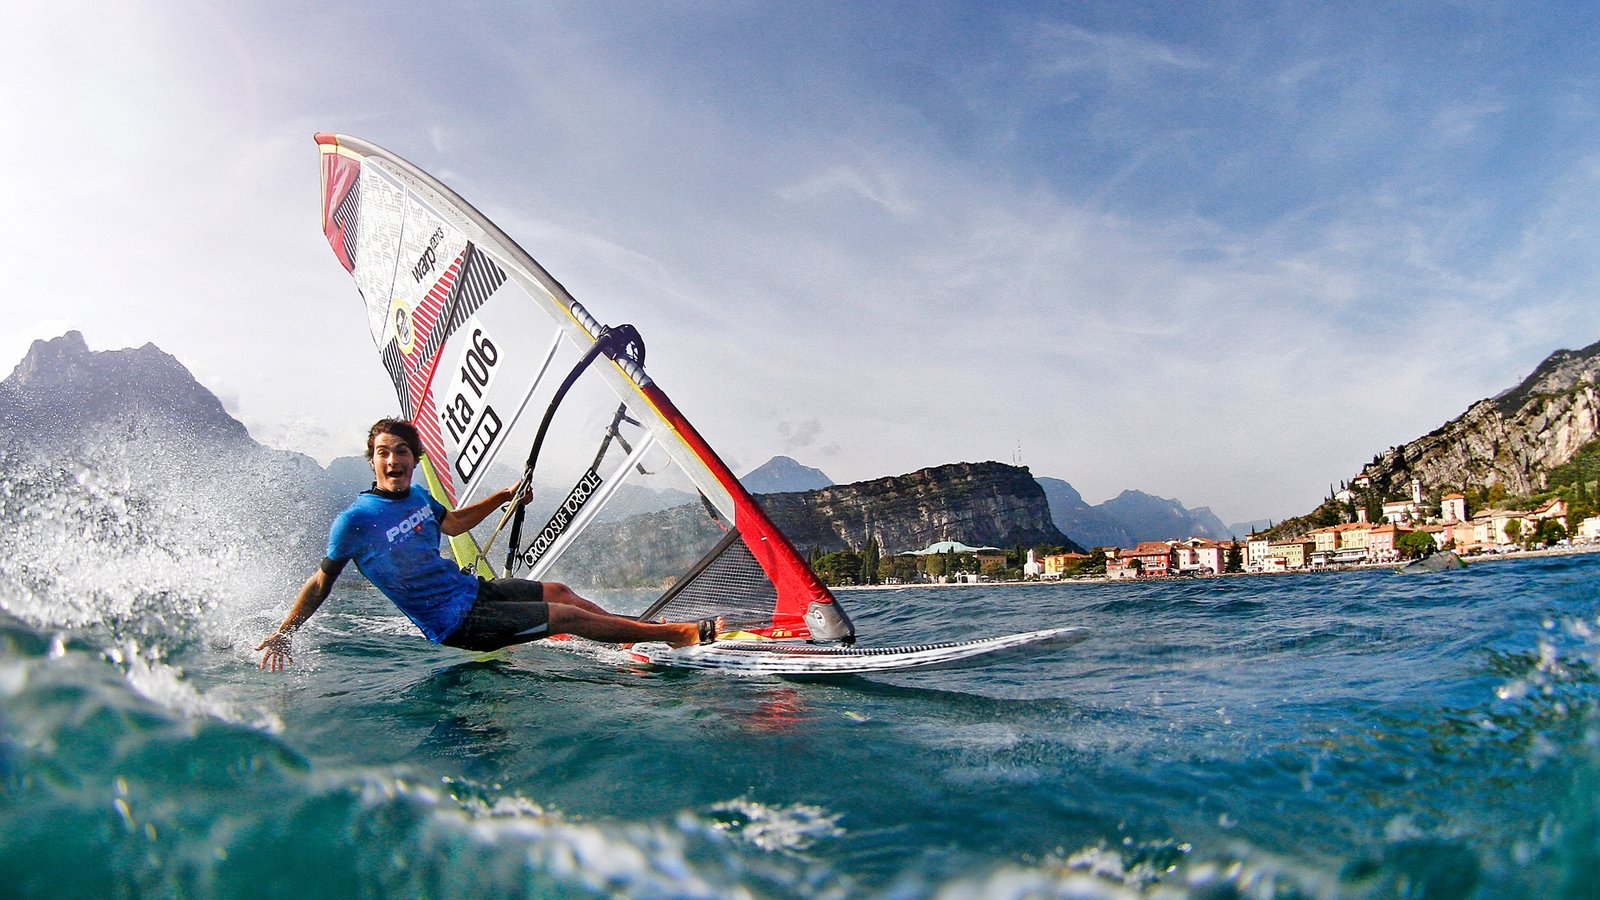 Trentino featuring windsurfing, a lake or waterhole and a coastal town